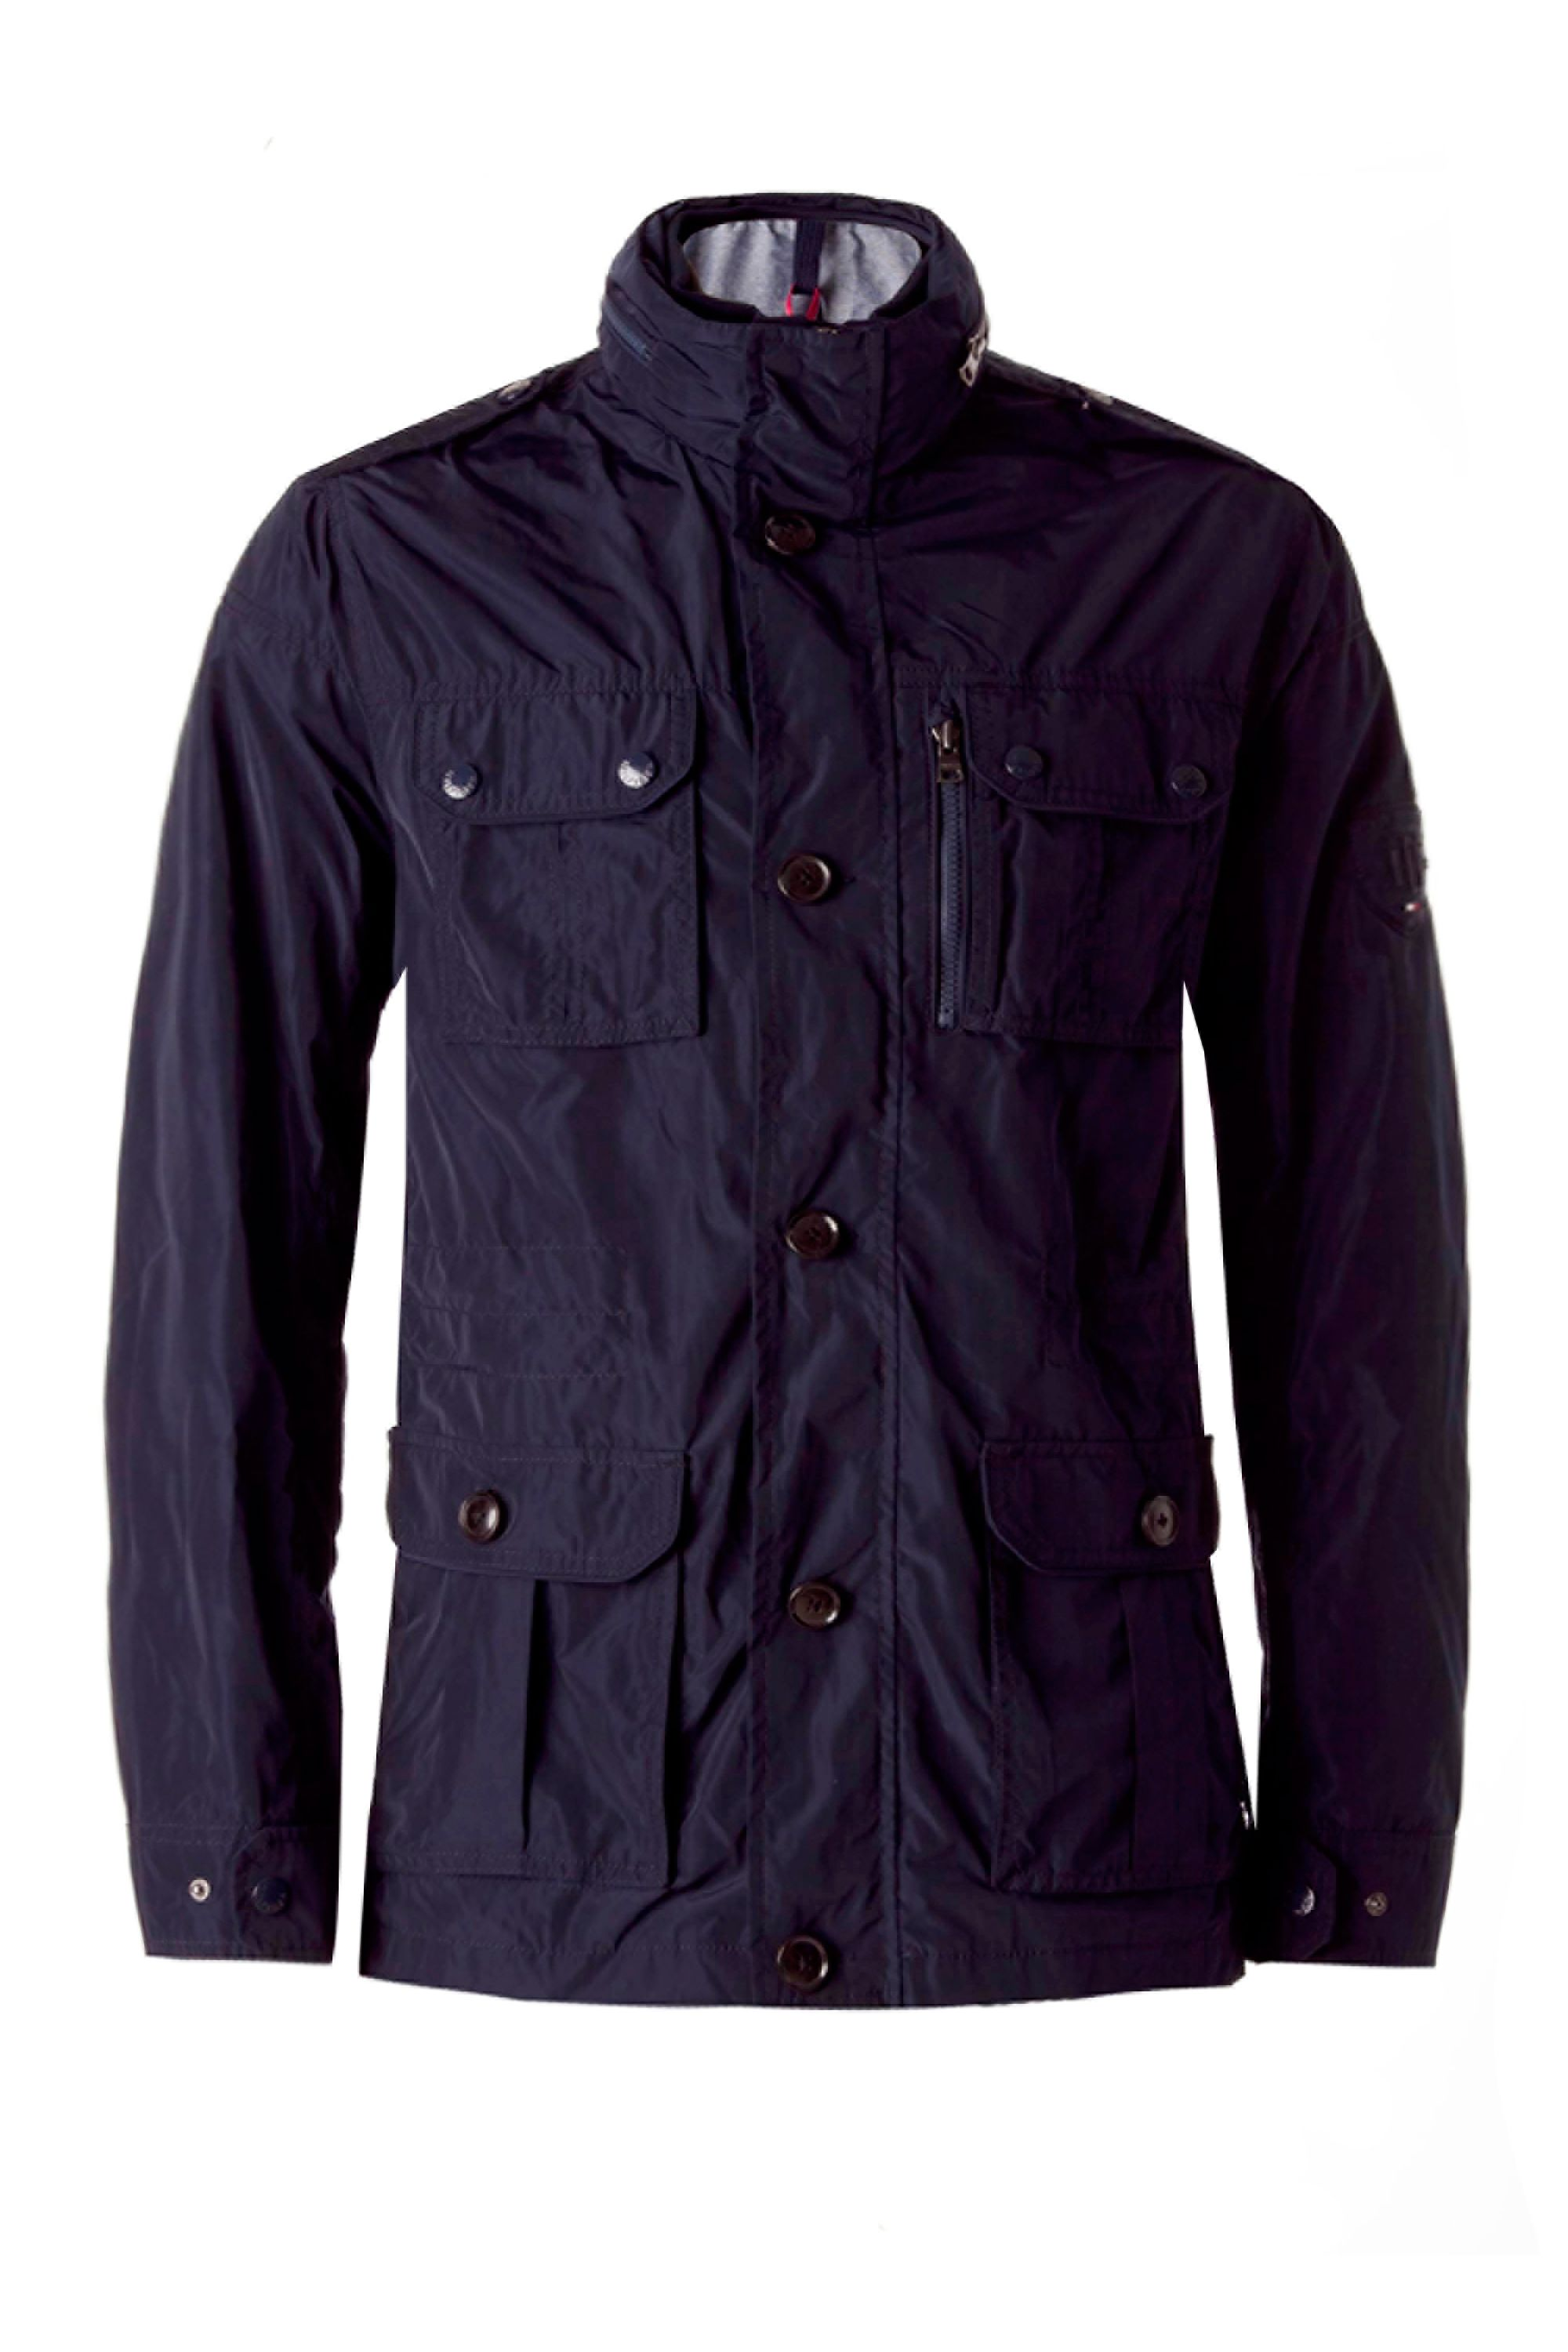 Calder airfield coat